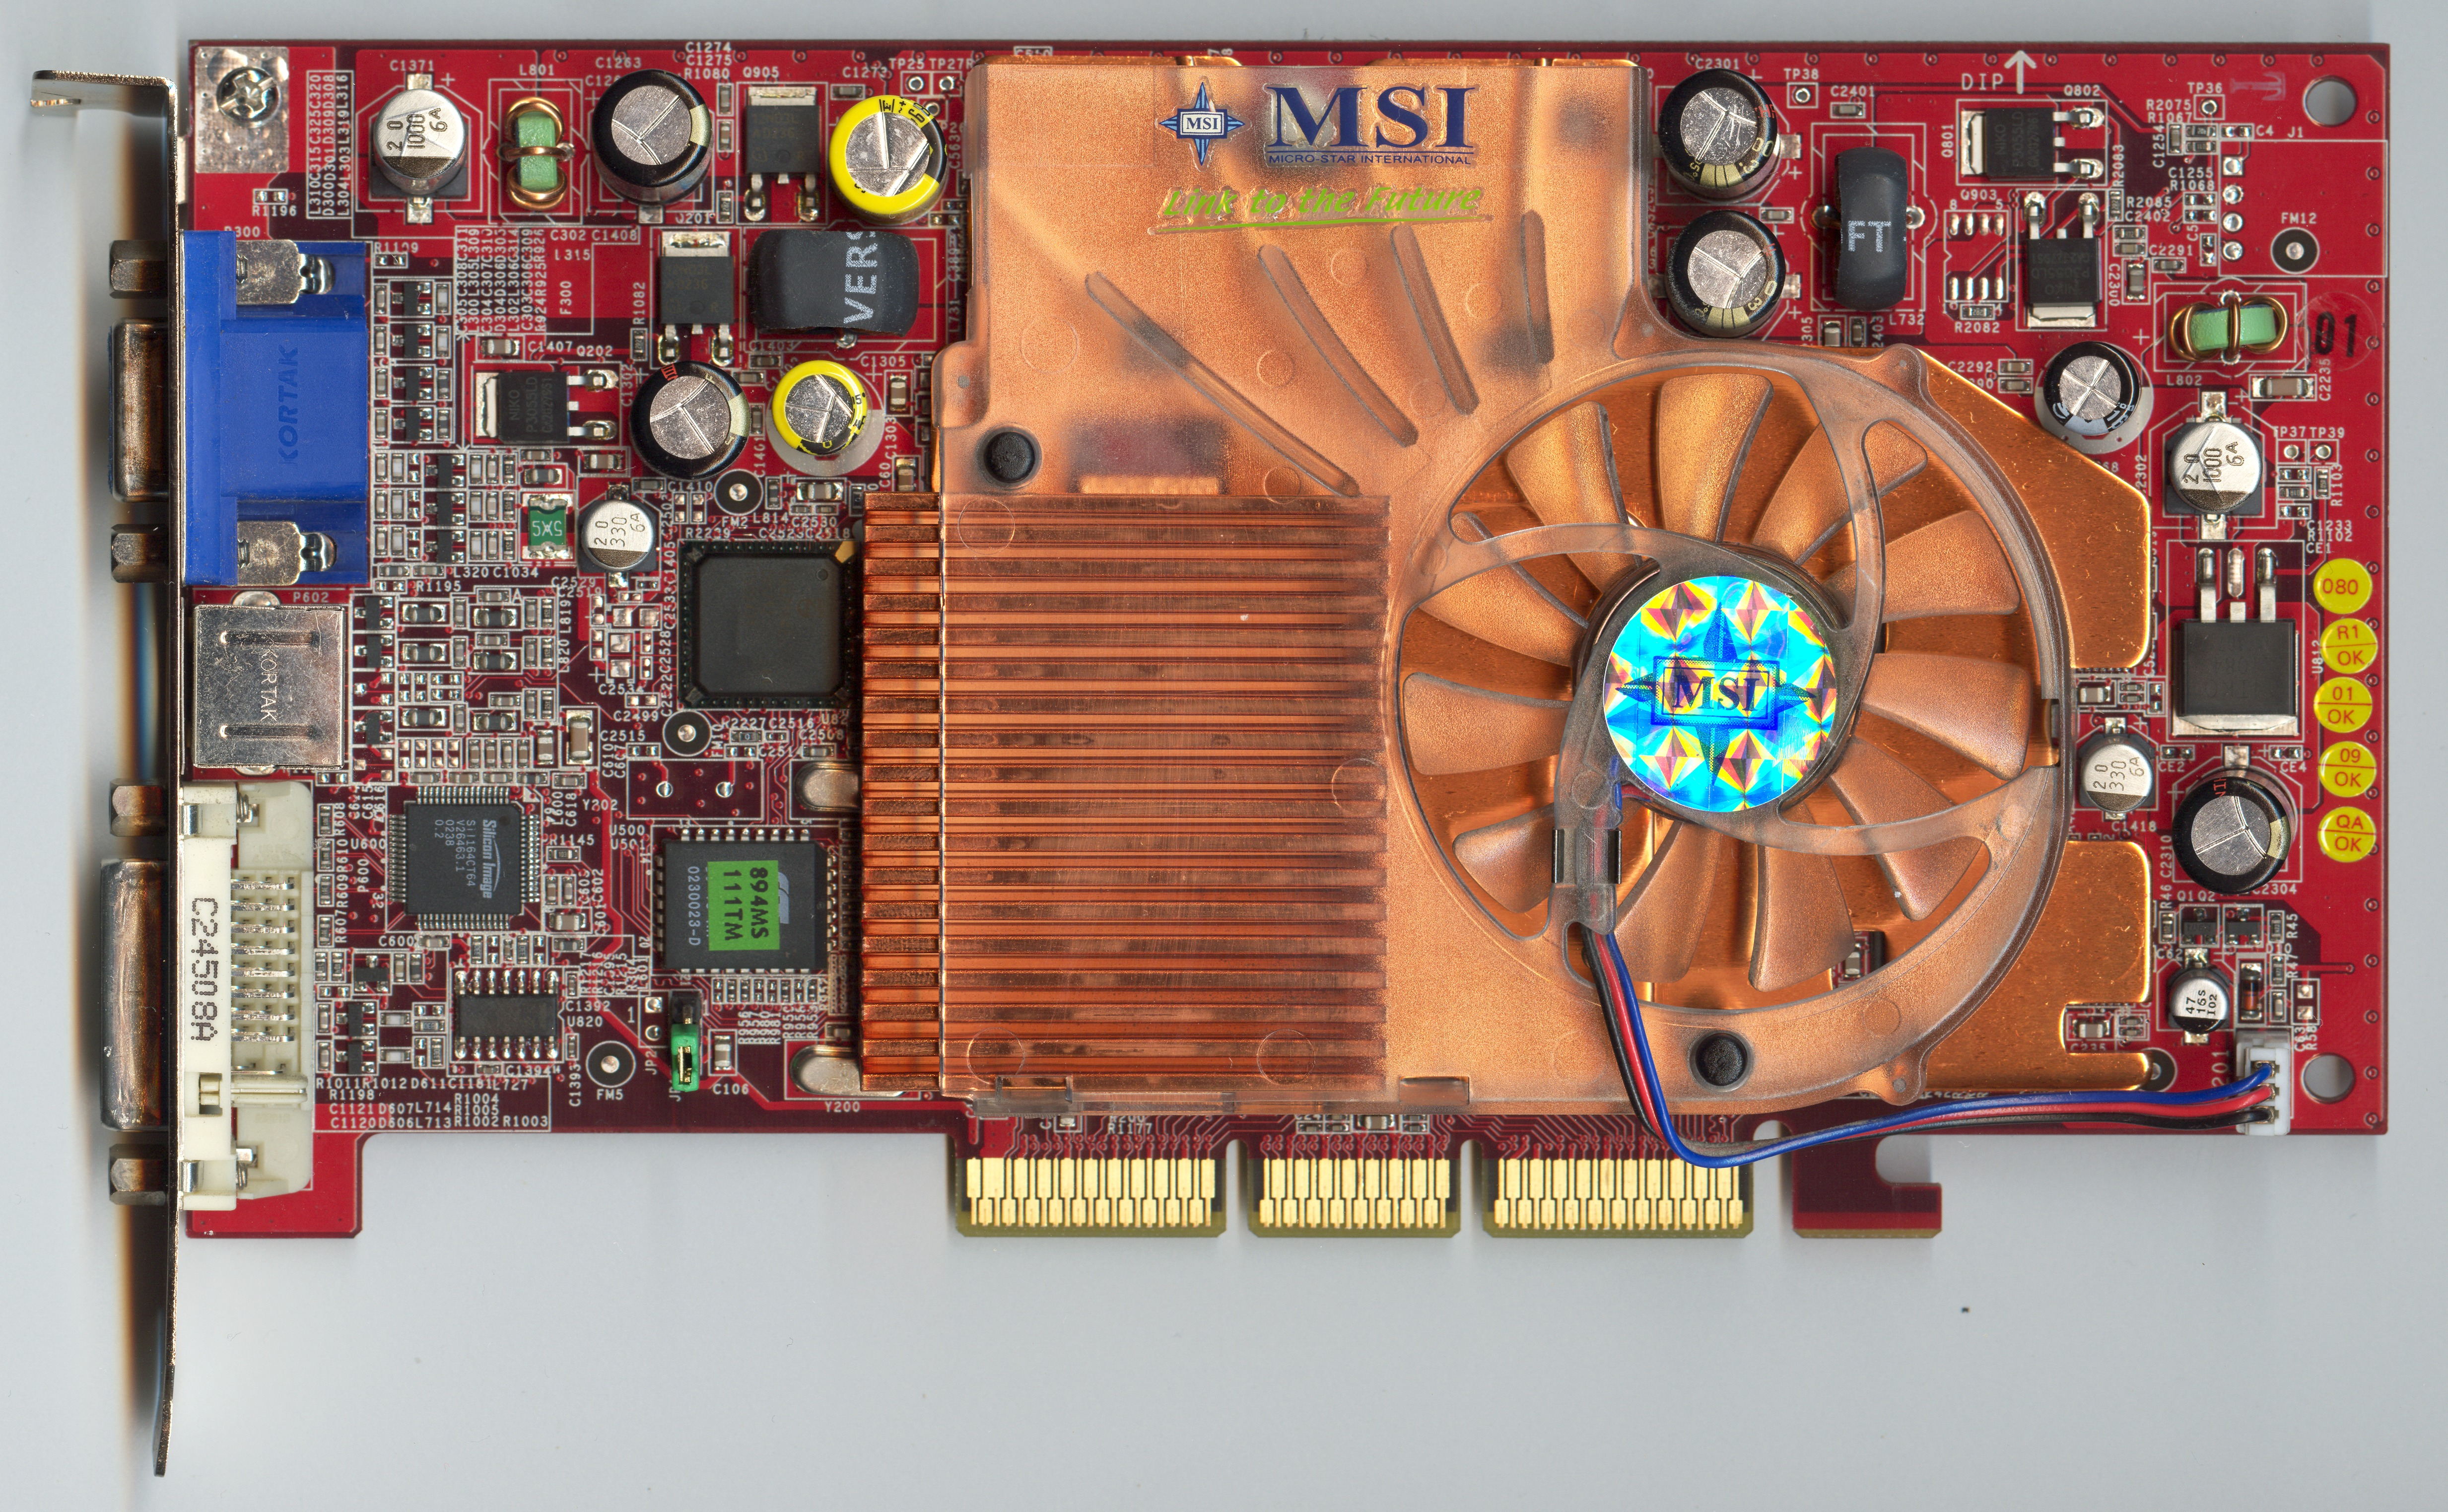 MSI GEFORCE TI4200 WINDOWS XP DRIVER DOWNLOAD